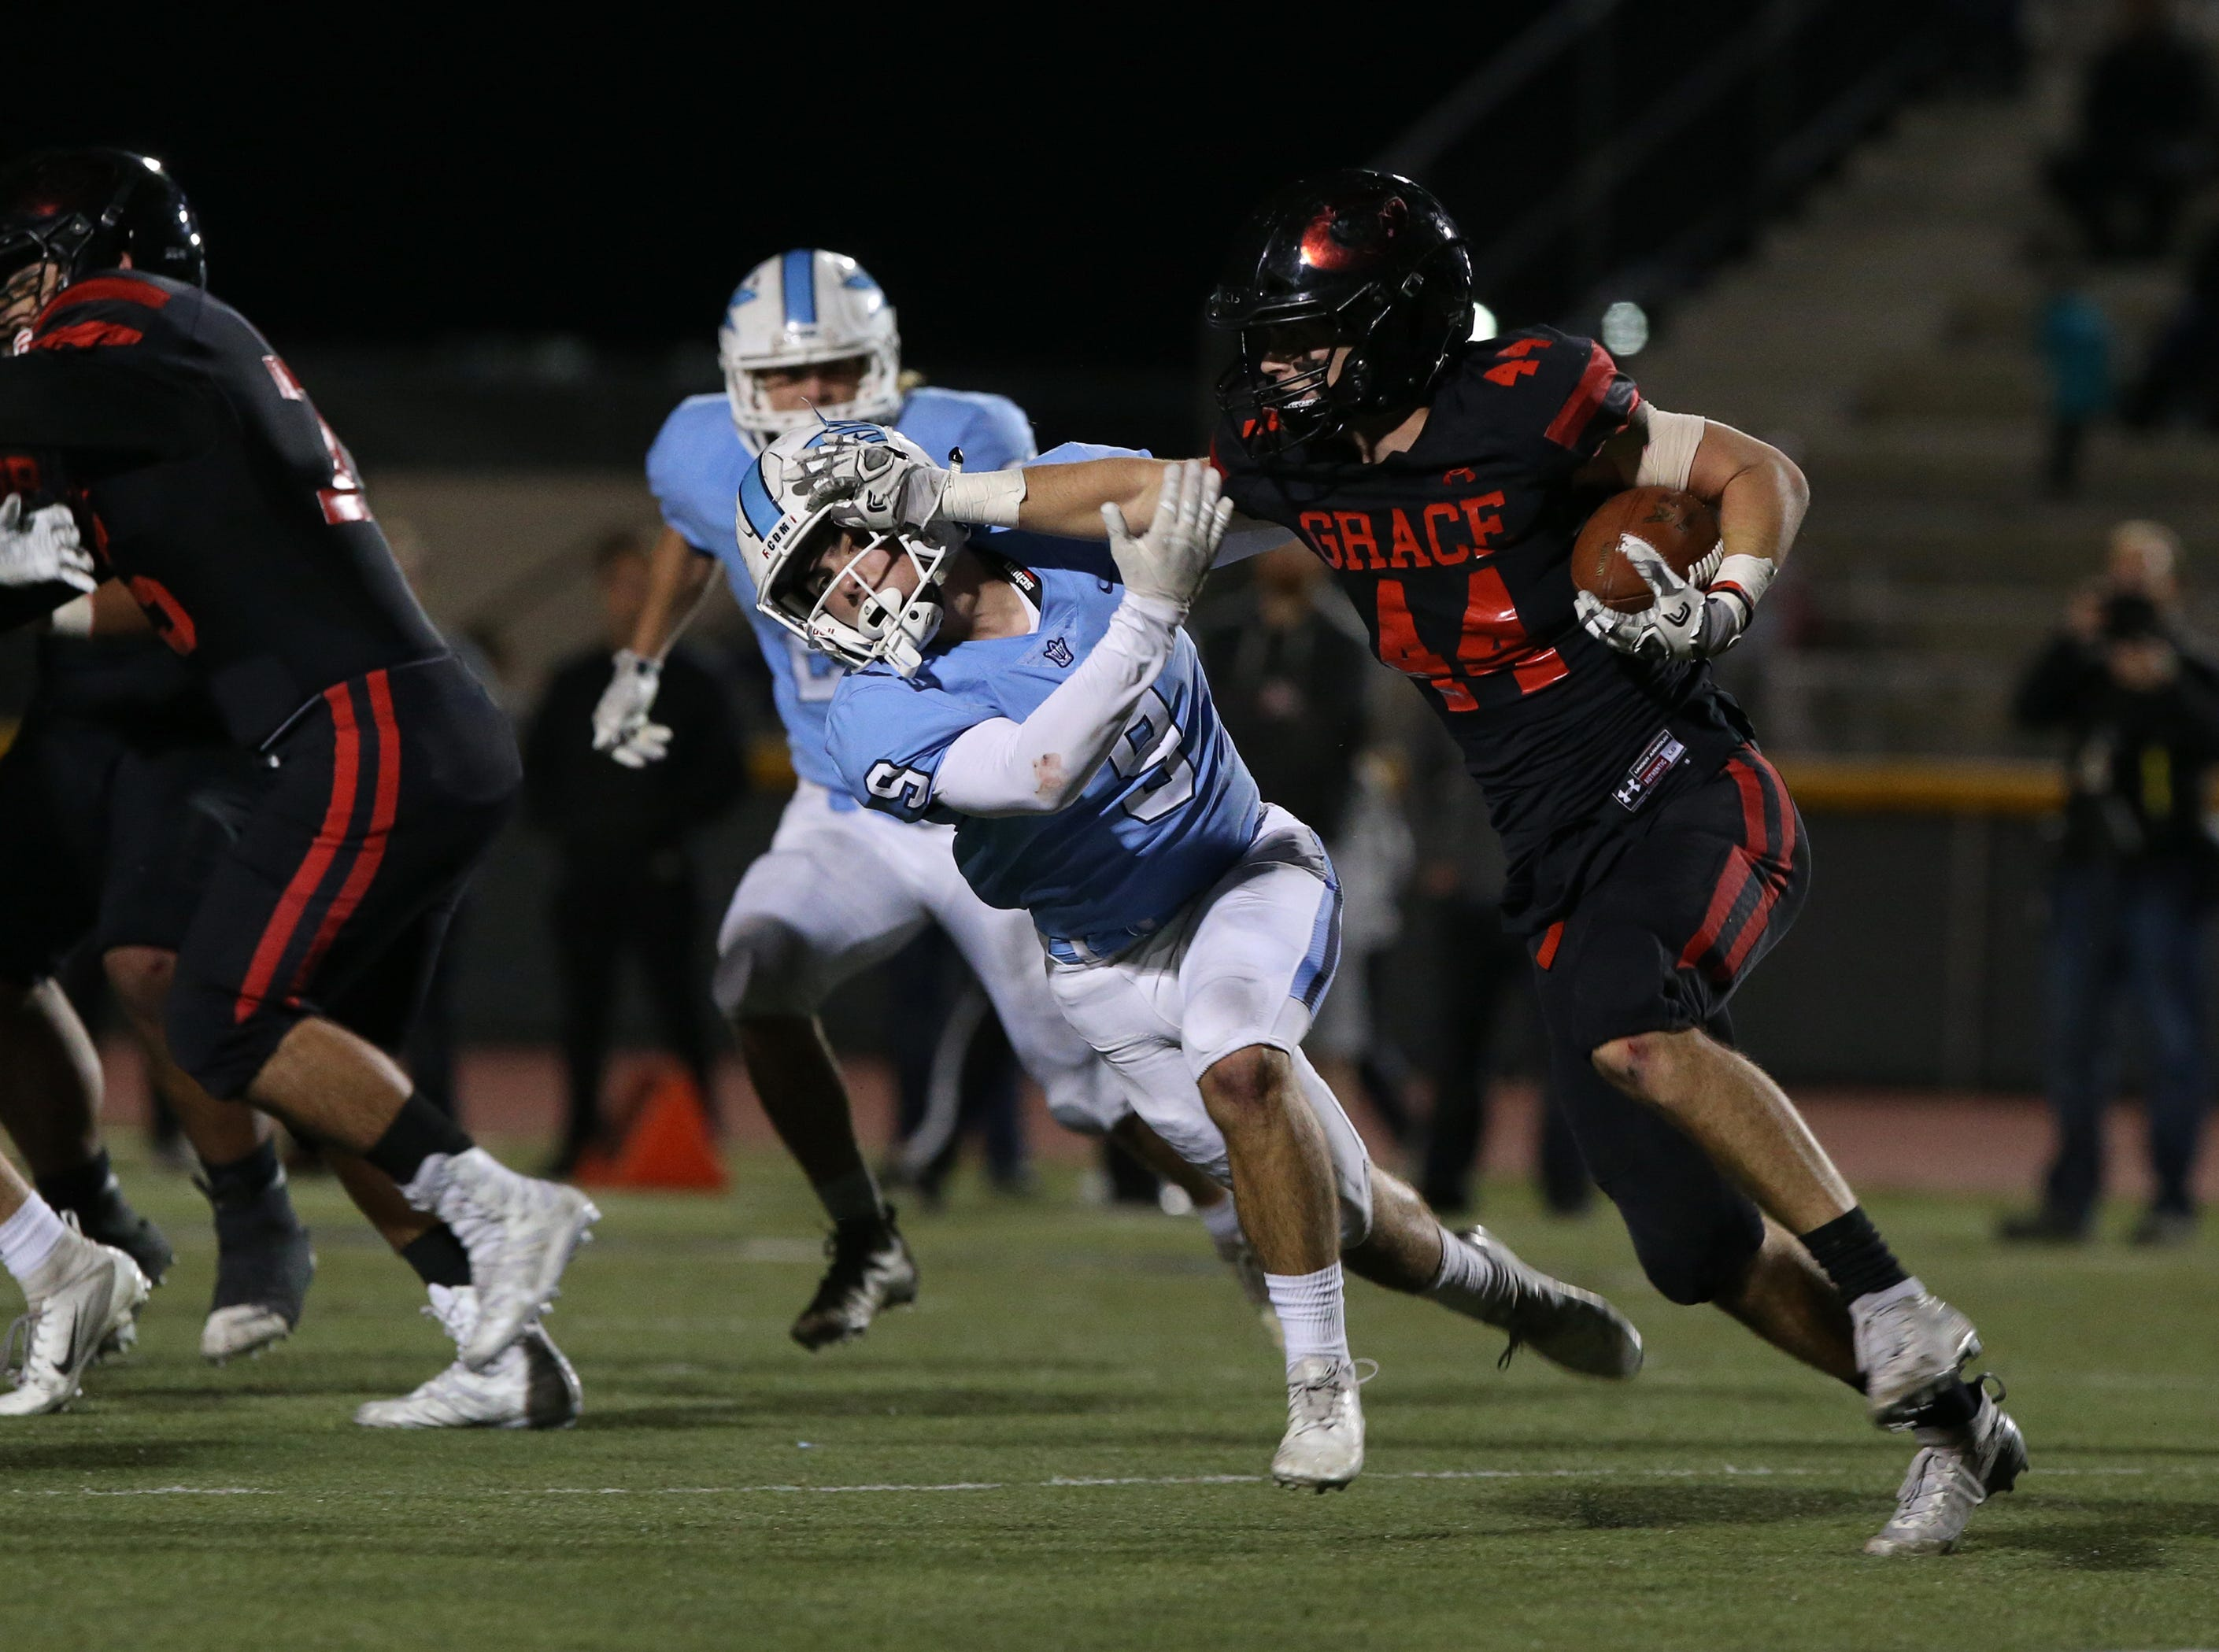 Grace Brethren's Josh Henderson pushes Corona del Mar's Luke Fisher out of the way during the Lancers' 26-14 win over Corona del Mar in the CIF-SS Division 4 championship game Saturday night at Royal High.